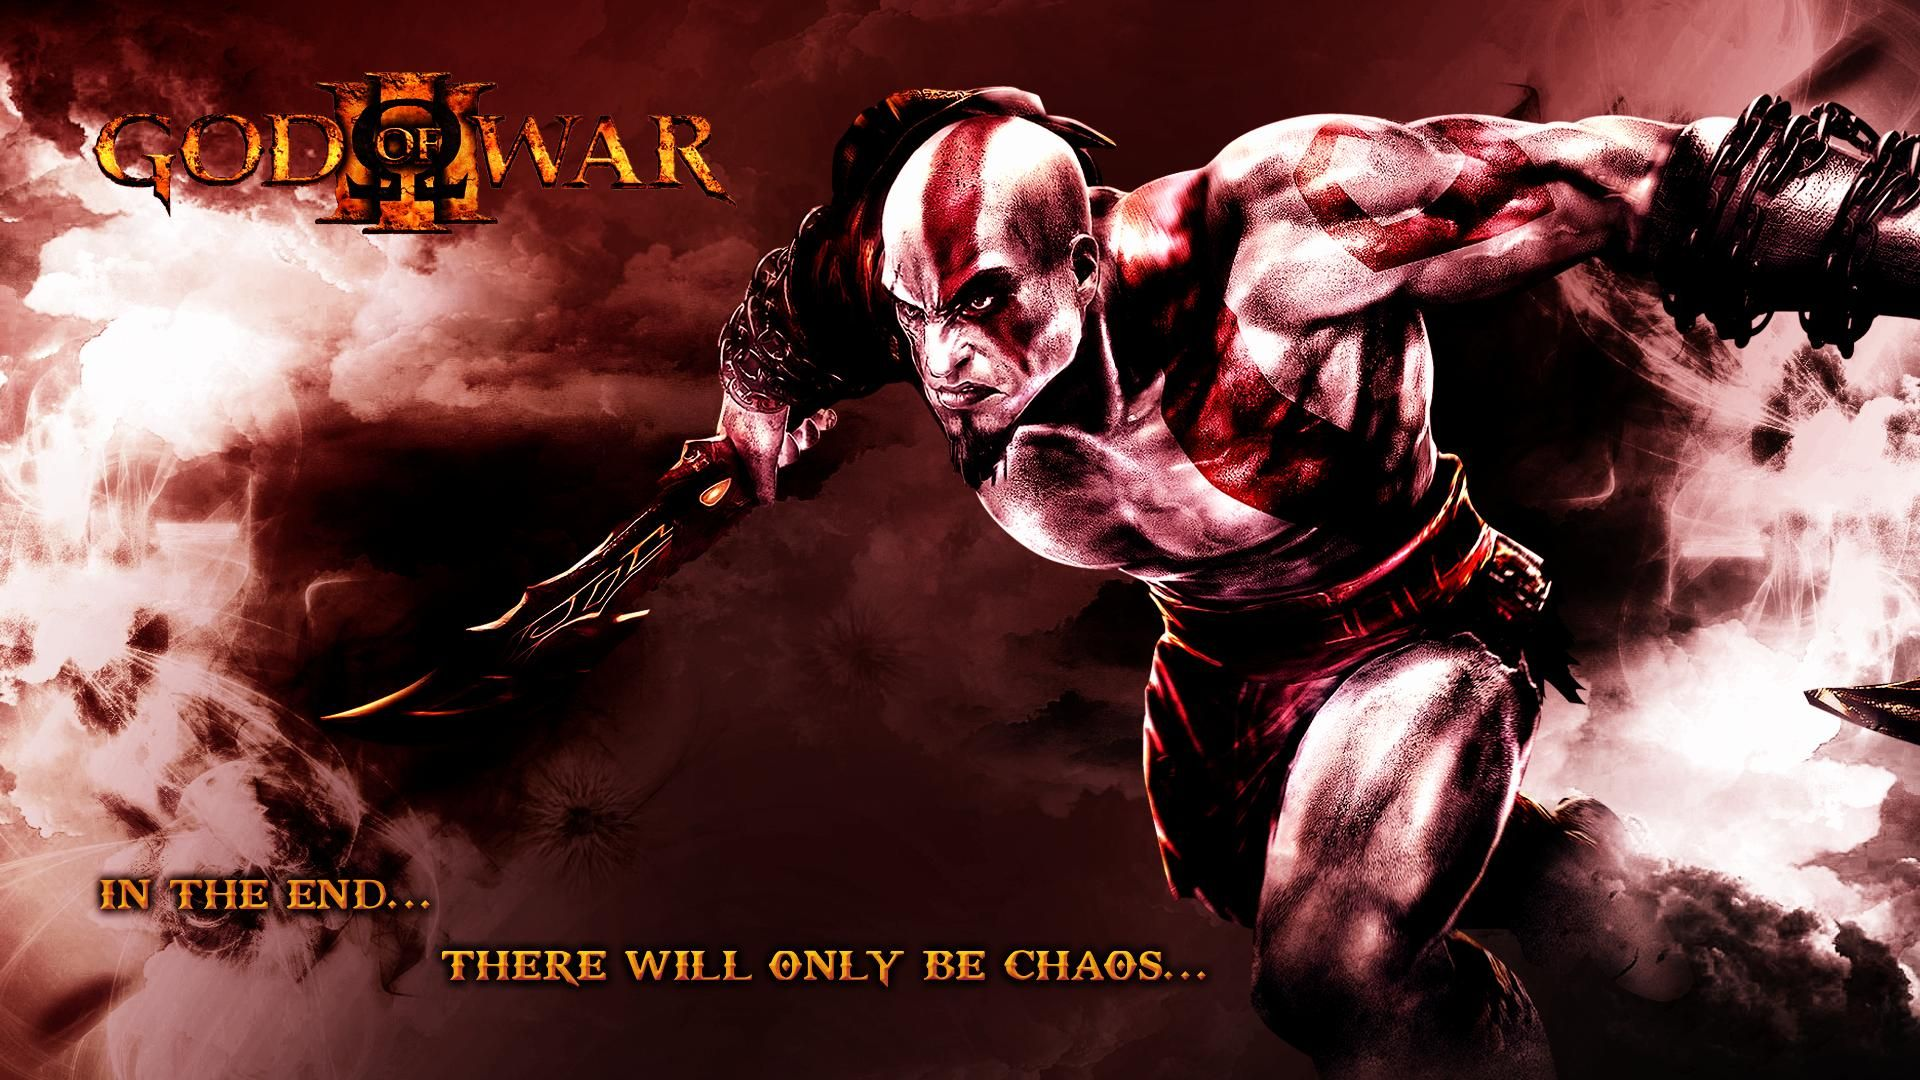 god of war hd wallpaper for your mobile phone spliffmobile 1920a—1080 god of war